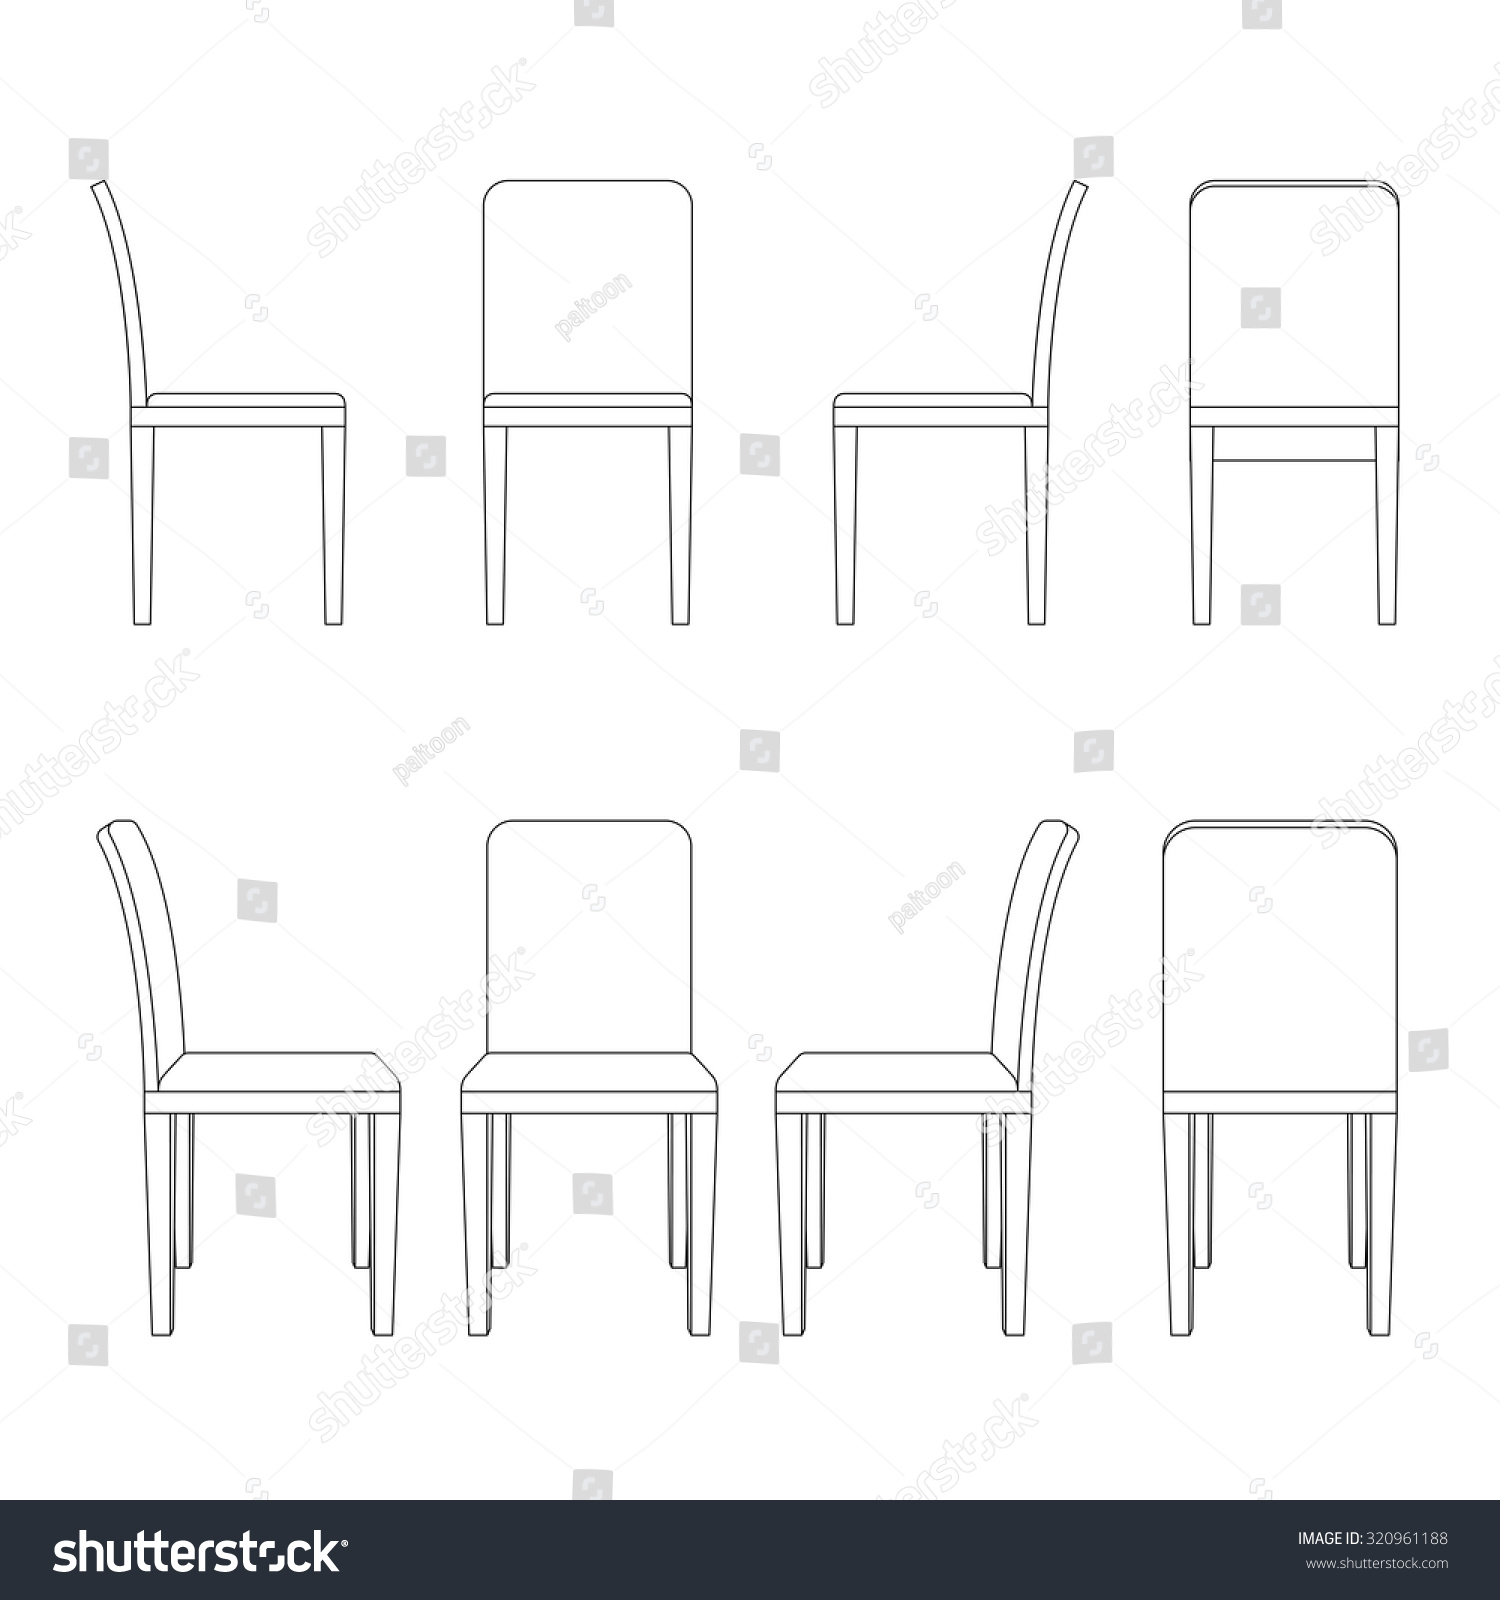 Chair illustration outline, perspective 3d front back and side views black  and white color